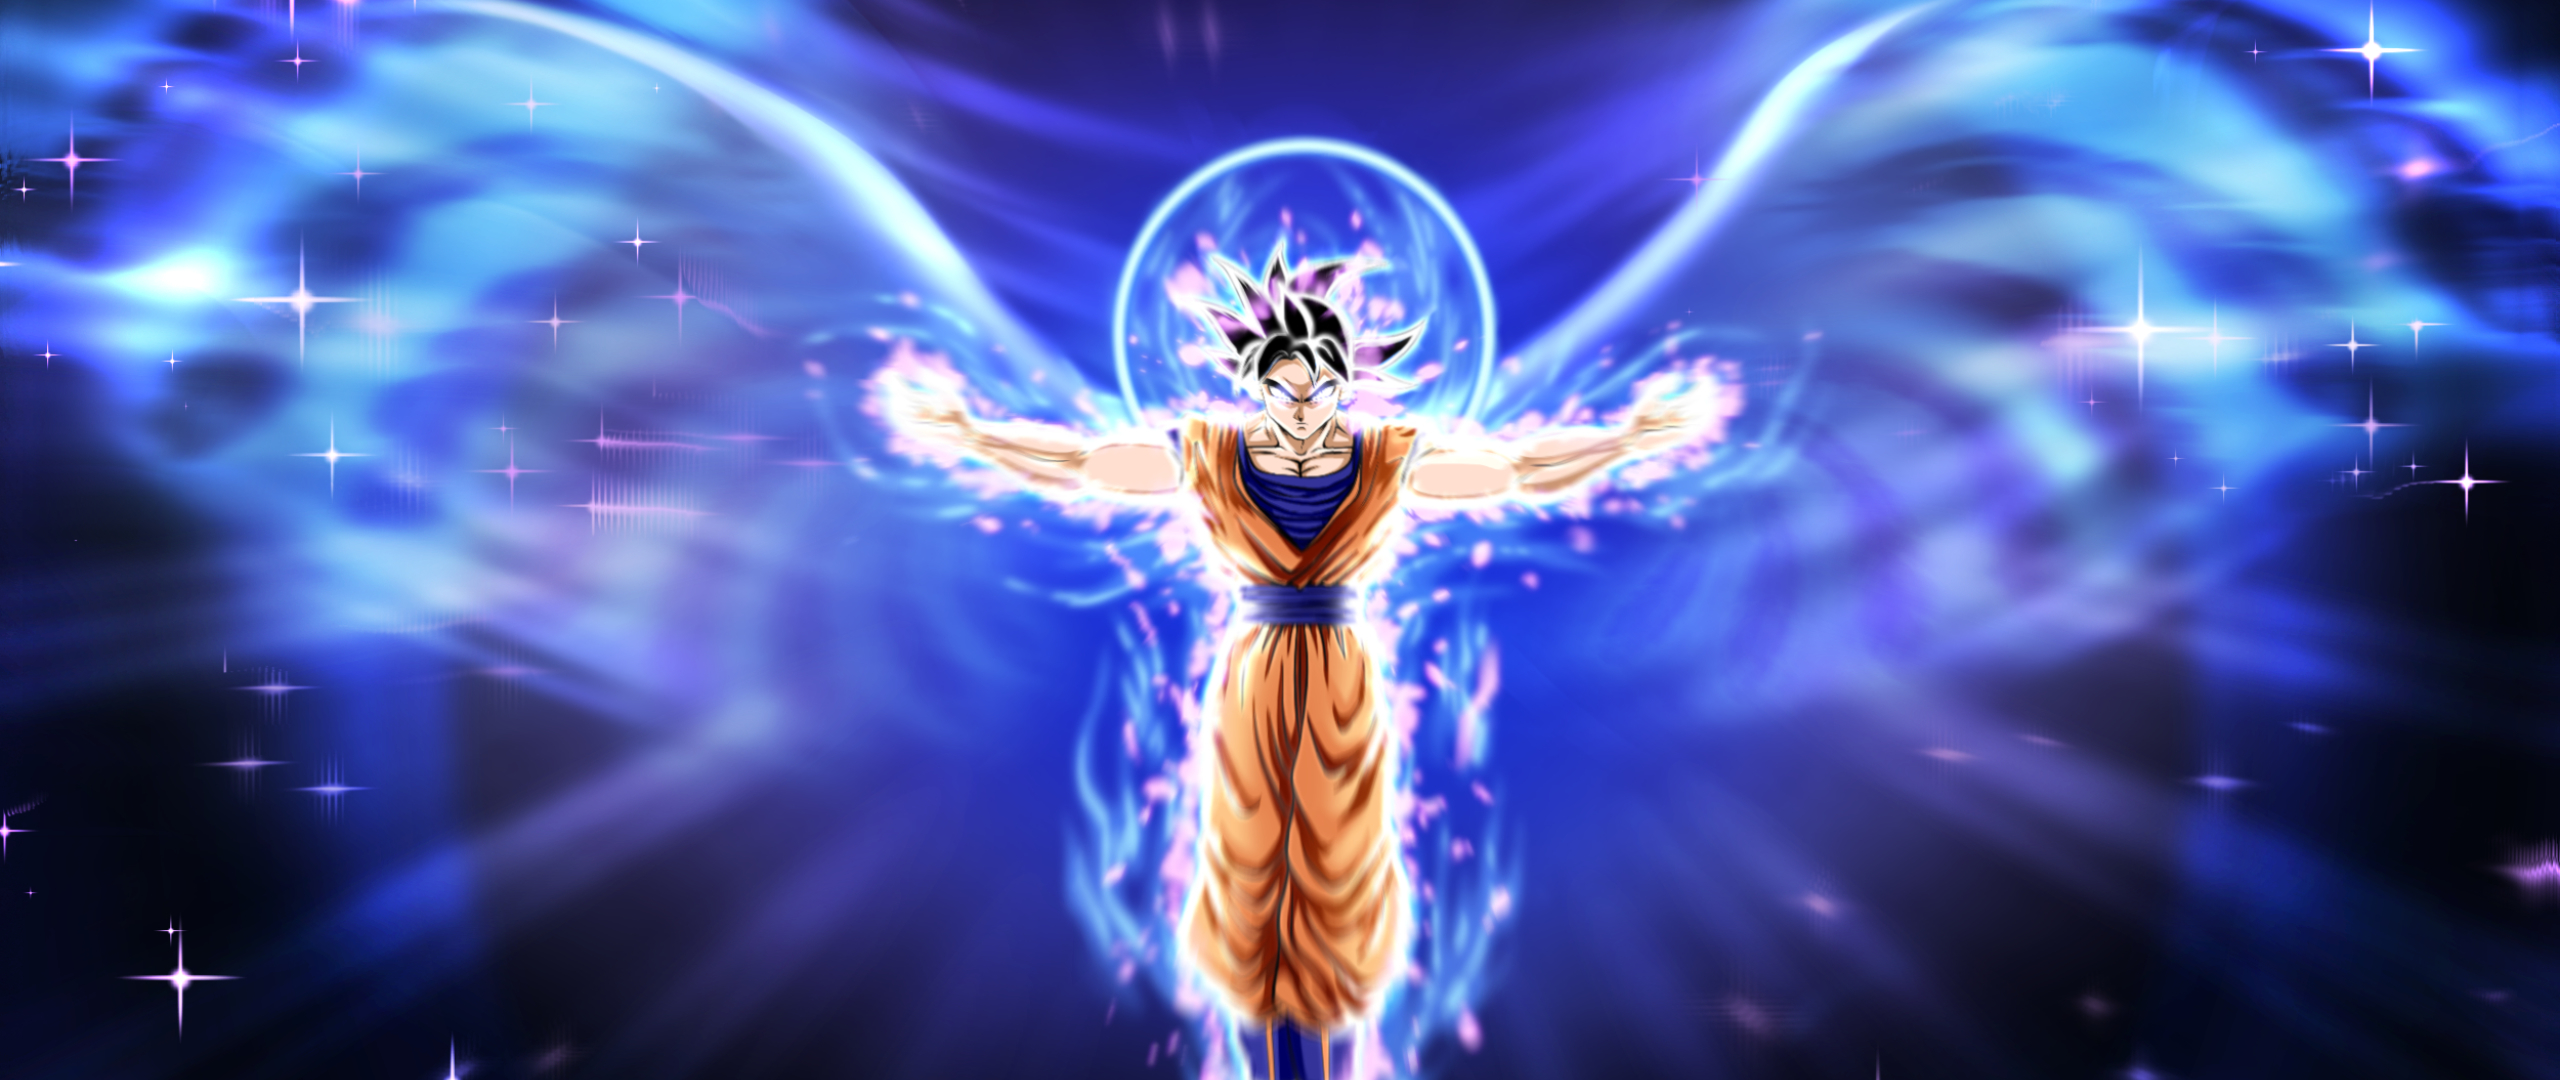 2560x1080 Ultra Instinct Dragon Ball Goku 2560x1080 Resolution